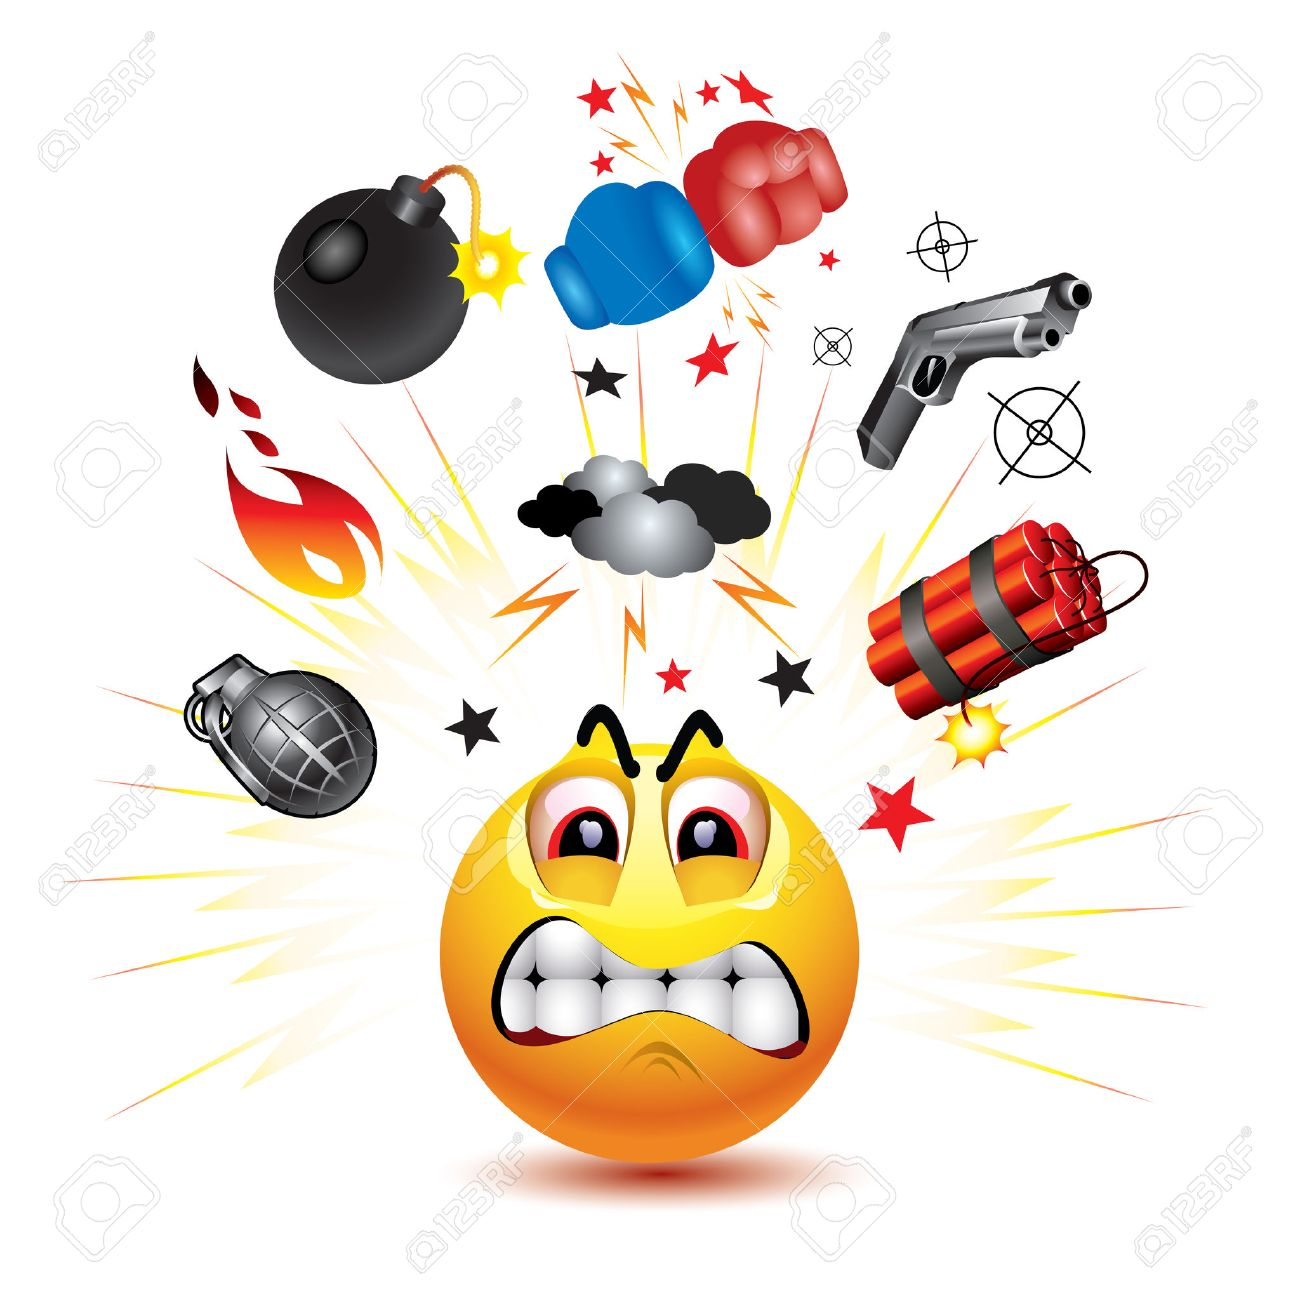 Smiley Ball With Symbols Of Fight And Anger Royalty Free Cliparts